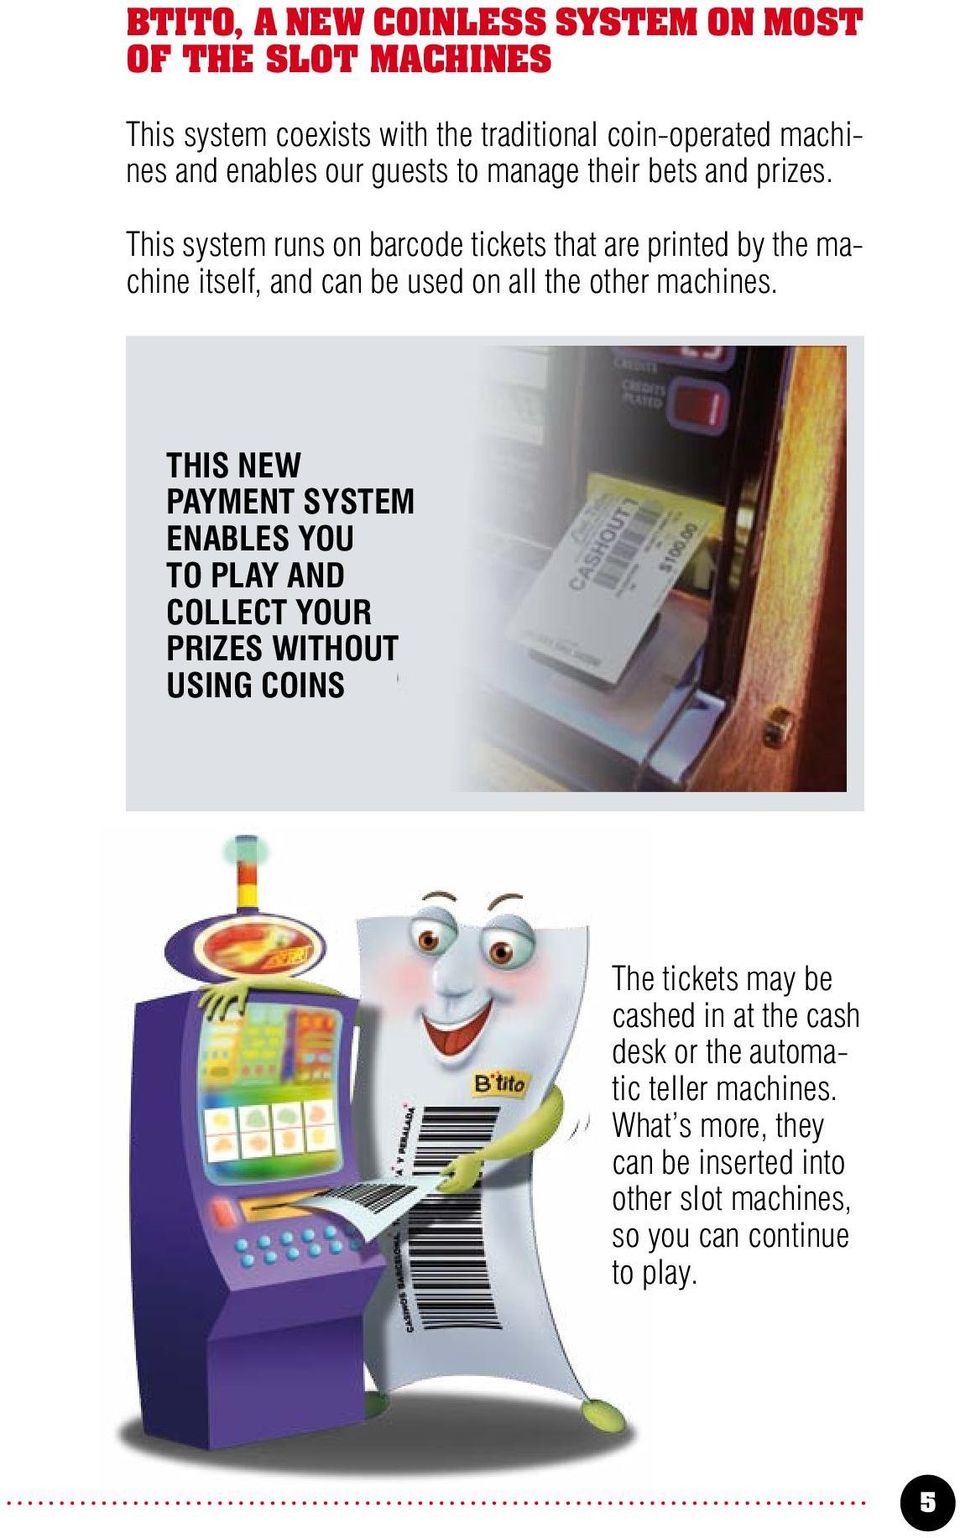 This system runs on barcode tickets that are printed by the machine itself, and can be used on all the other machines.